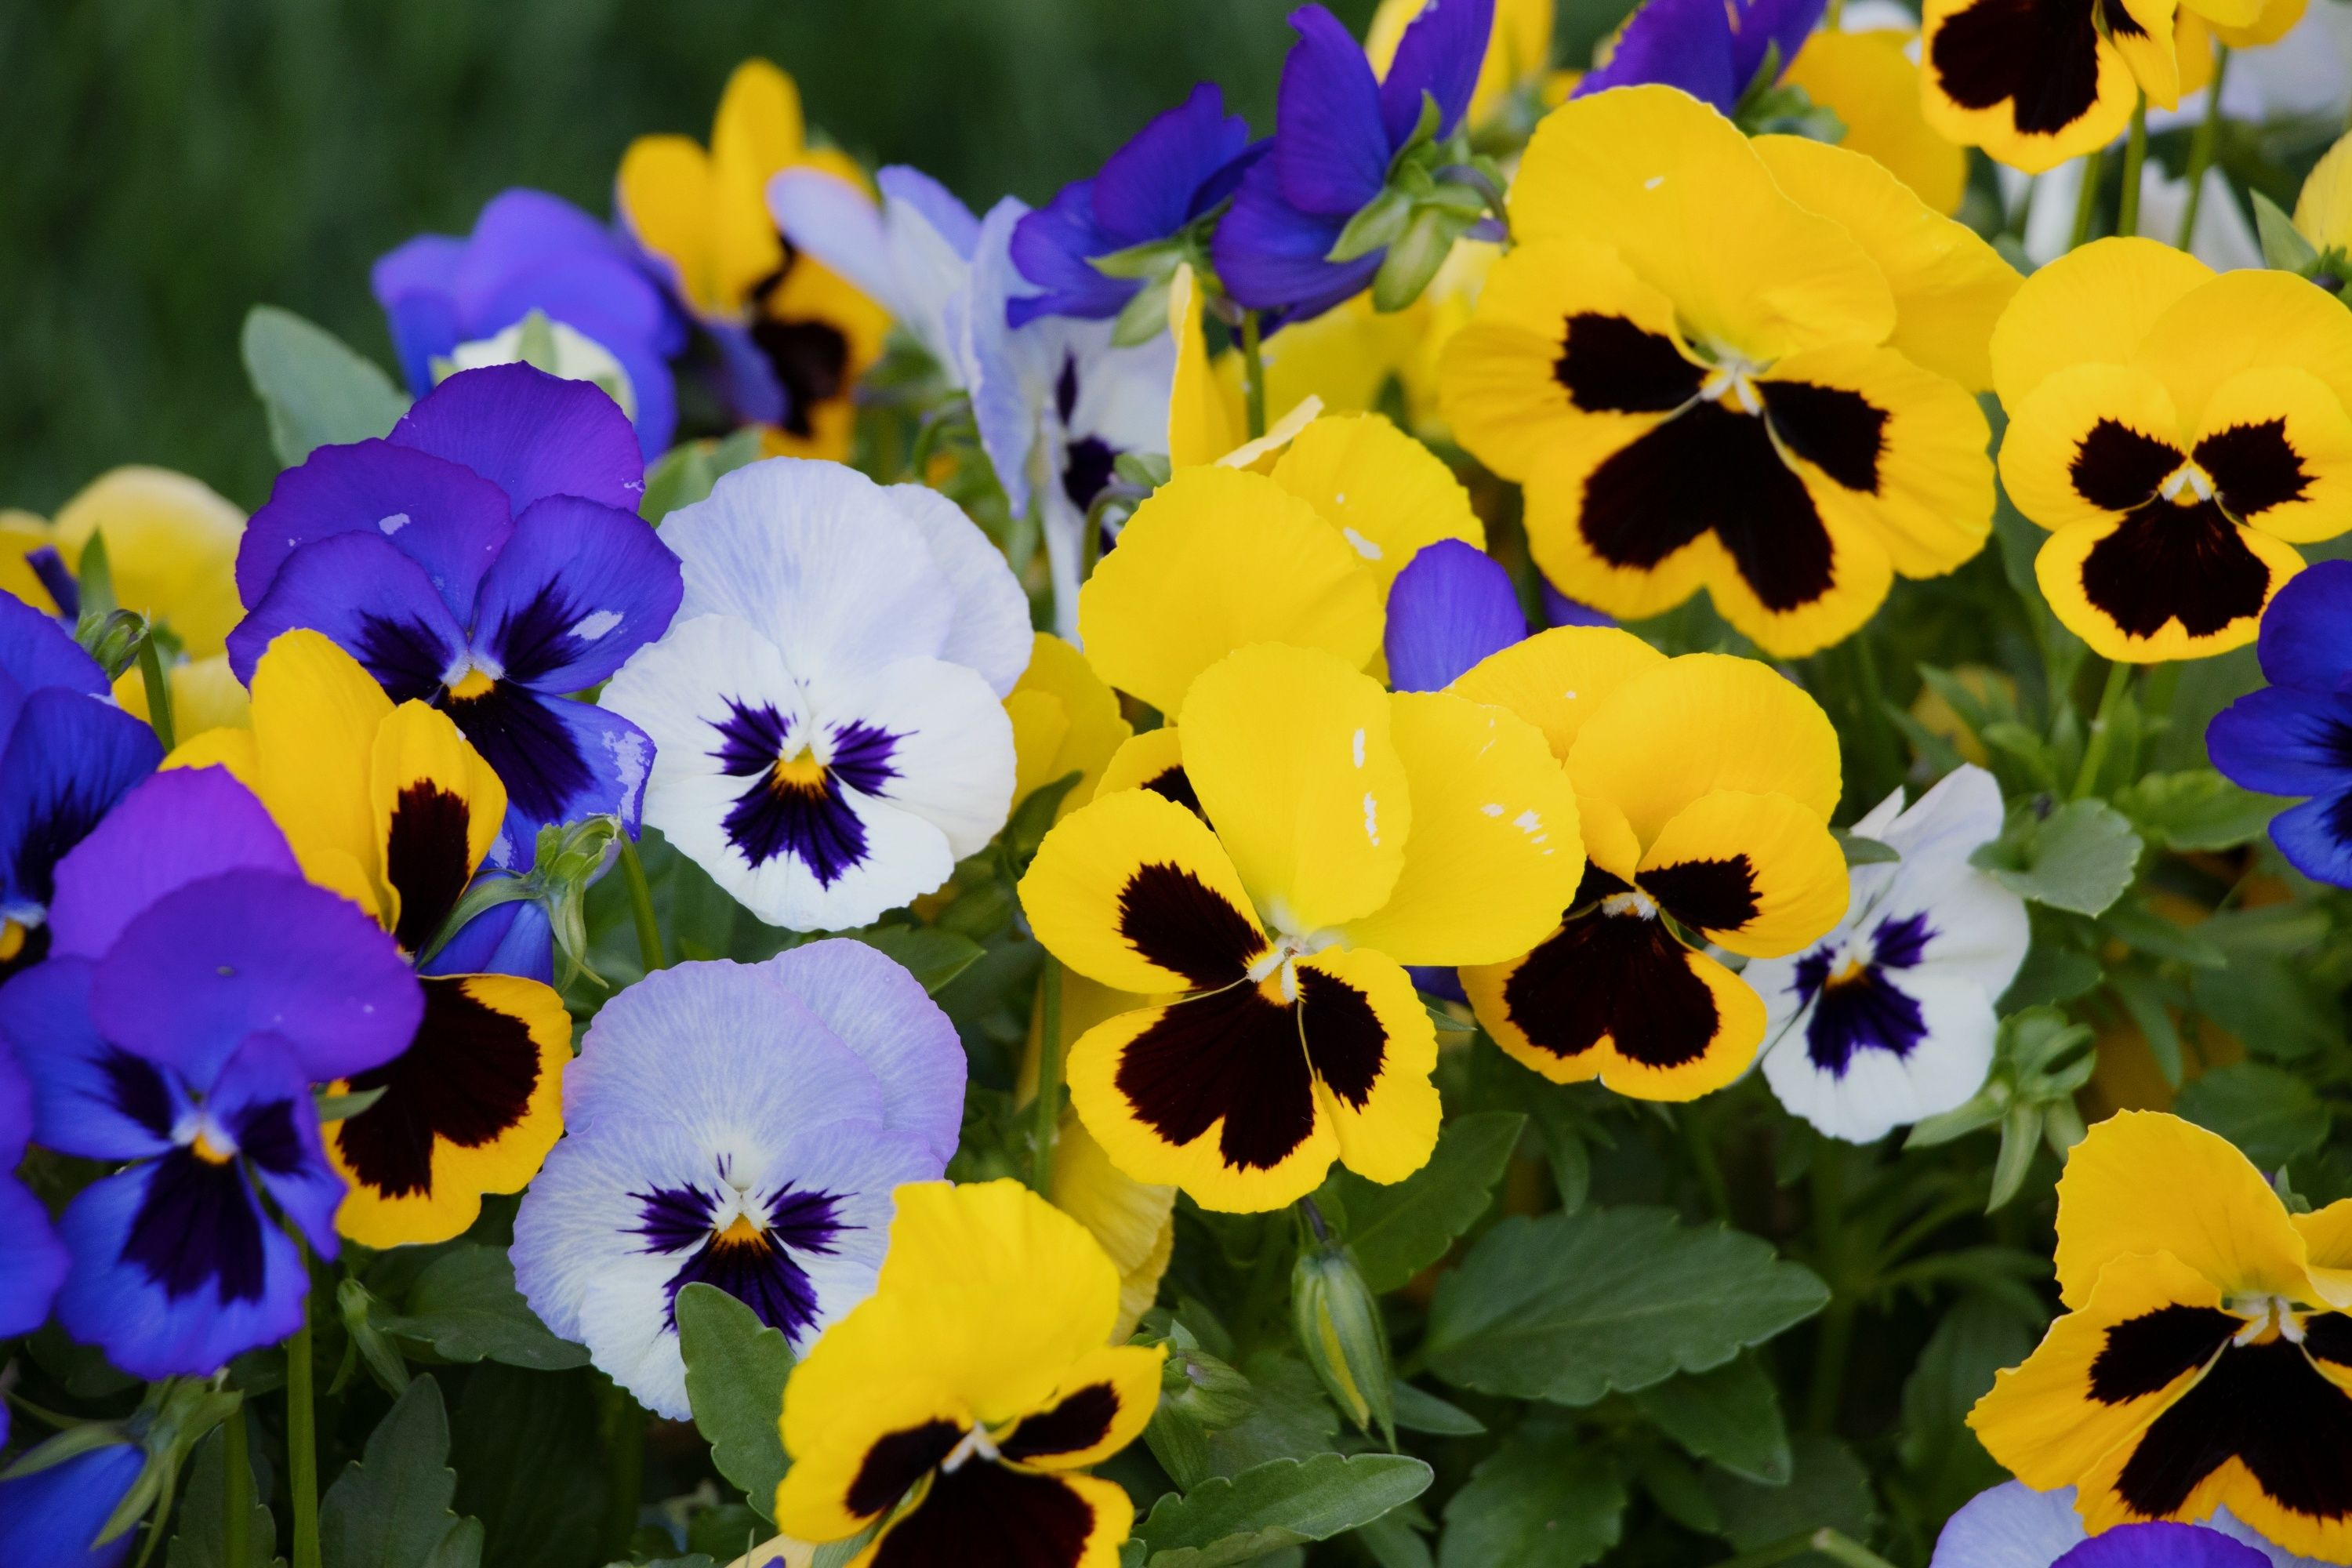 Winter pansies gardening guide